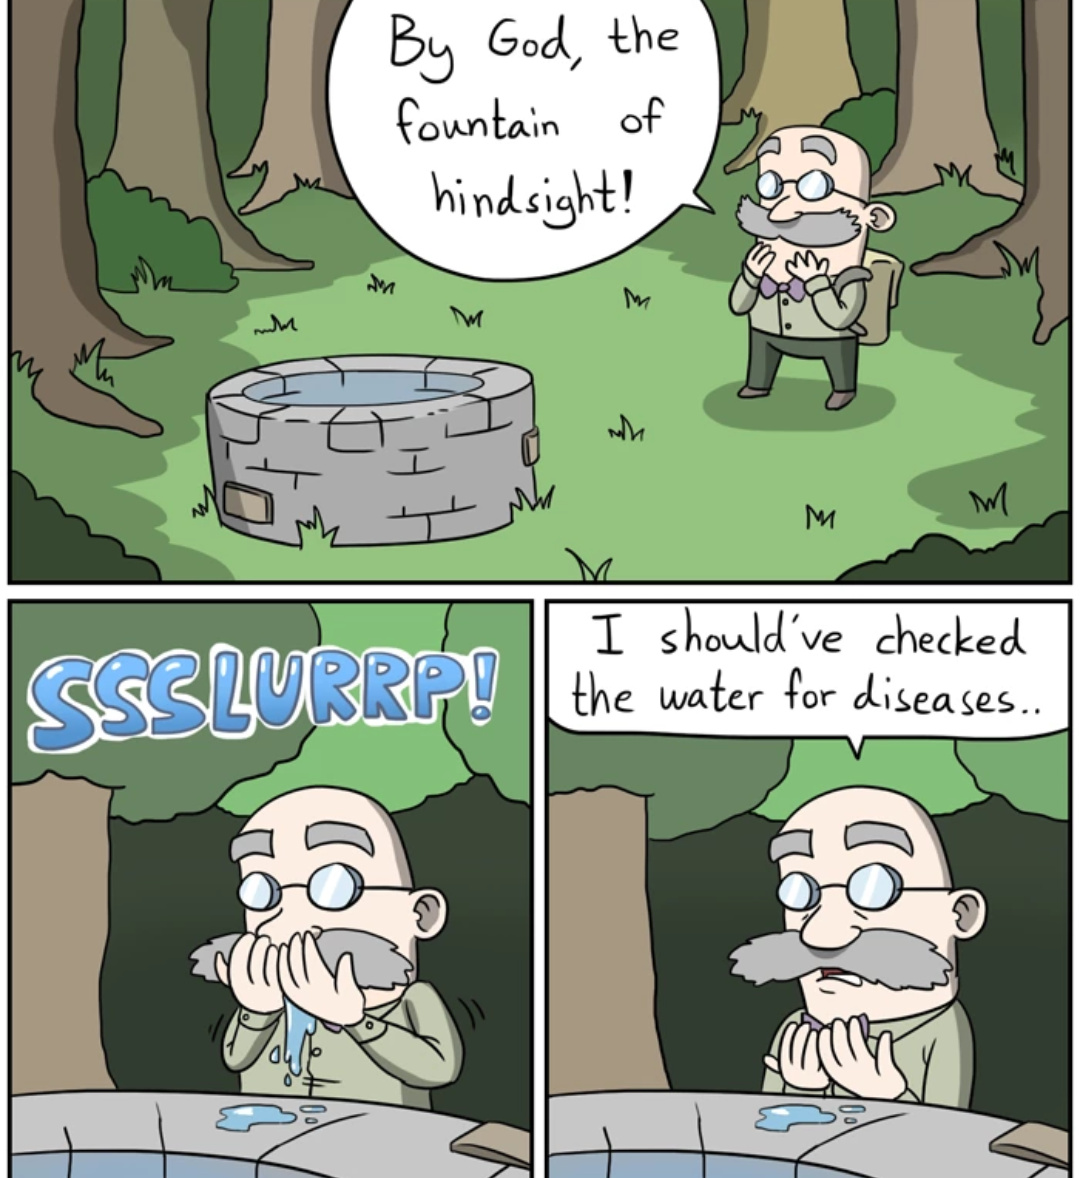 575614dcb3265 fountain of hindsight meme by 101wizard ) memedroid